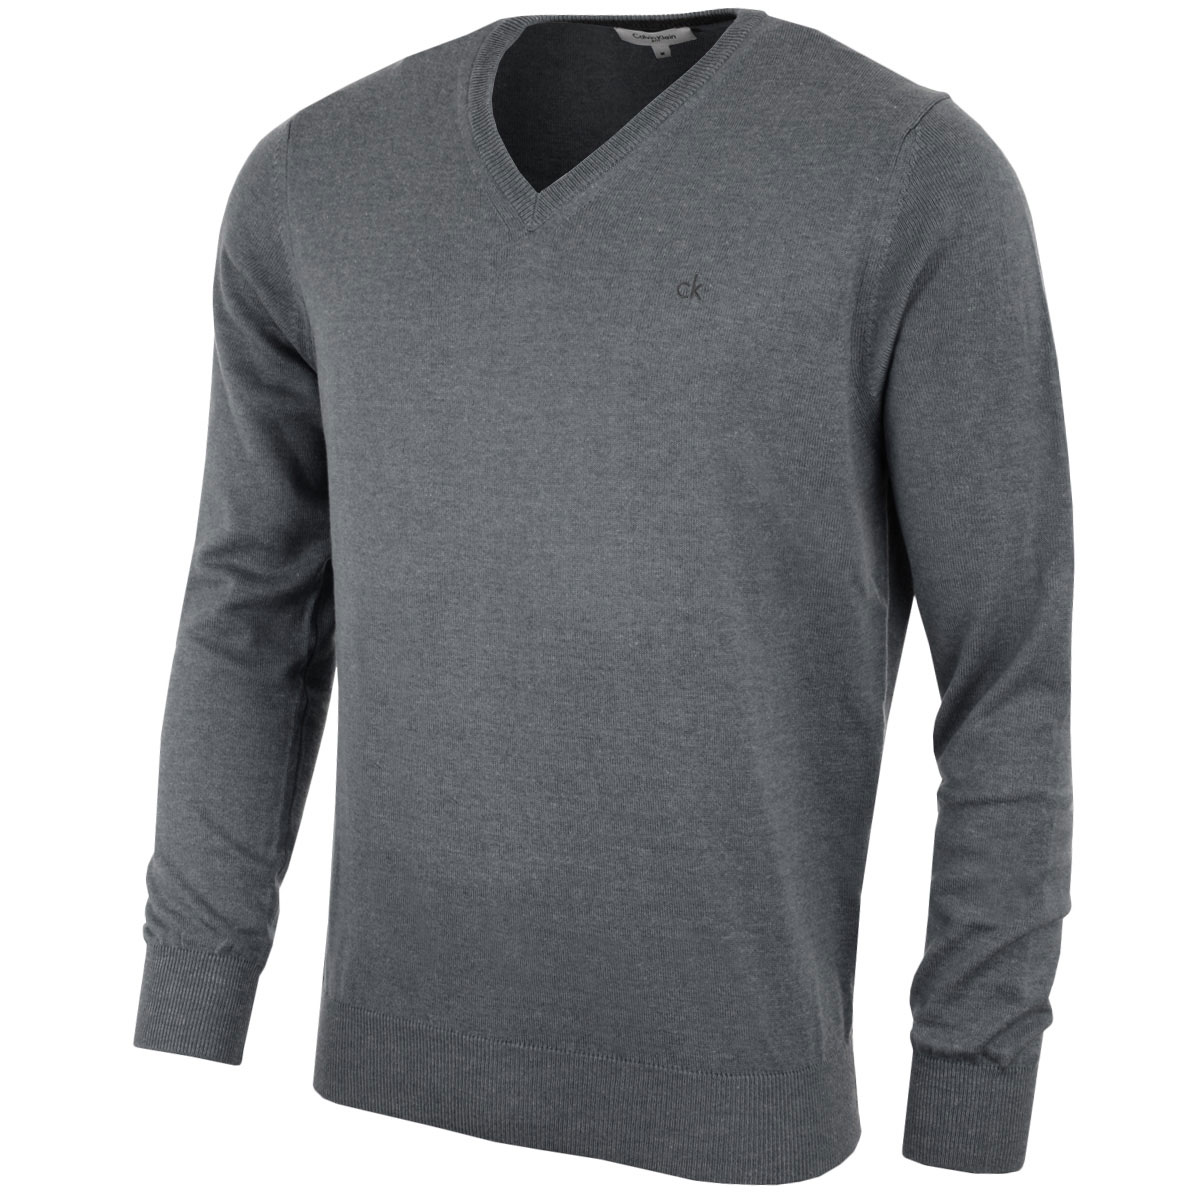 calvin klein golf mens ck v neck sweater cotton blend pullover jumper top ebay. Black Bedroom Furniture Sets. Home Design Ideas